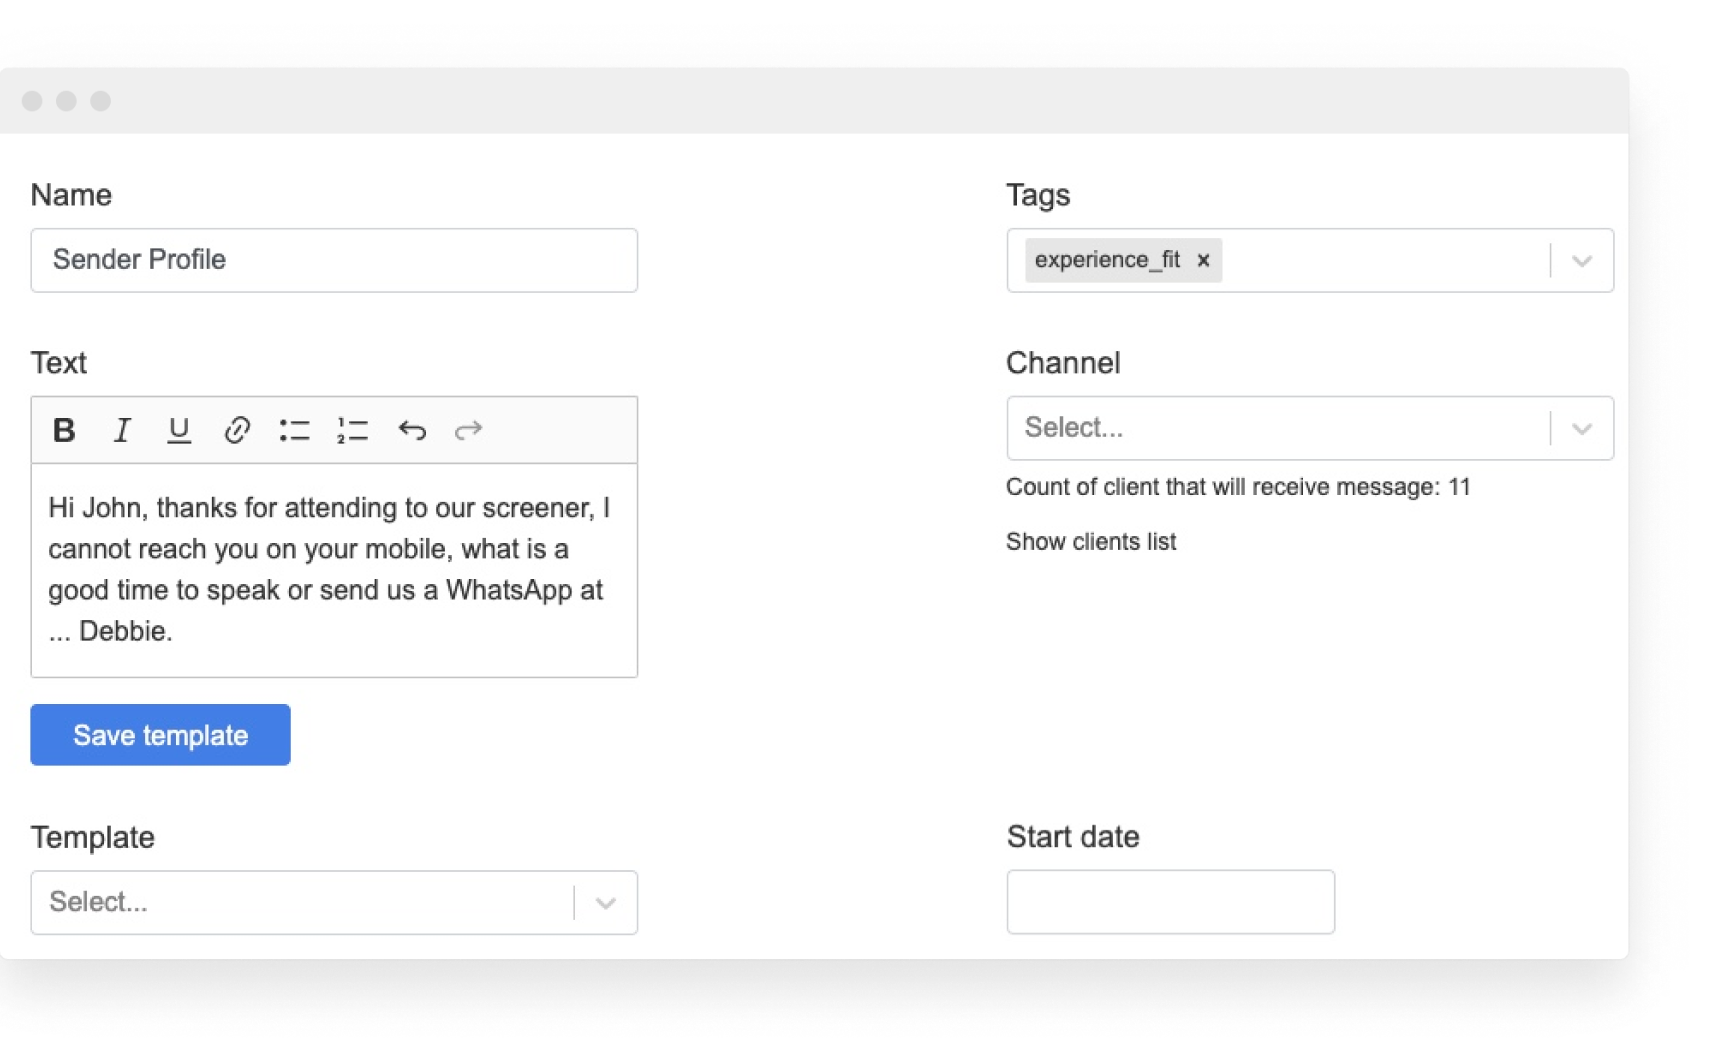 Improve team productivity with a shared chat inbox and centralize all your messaging channels